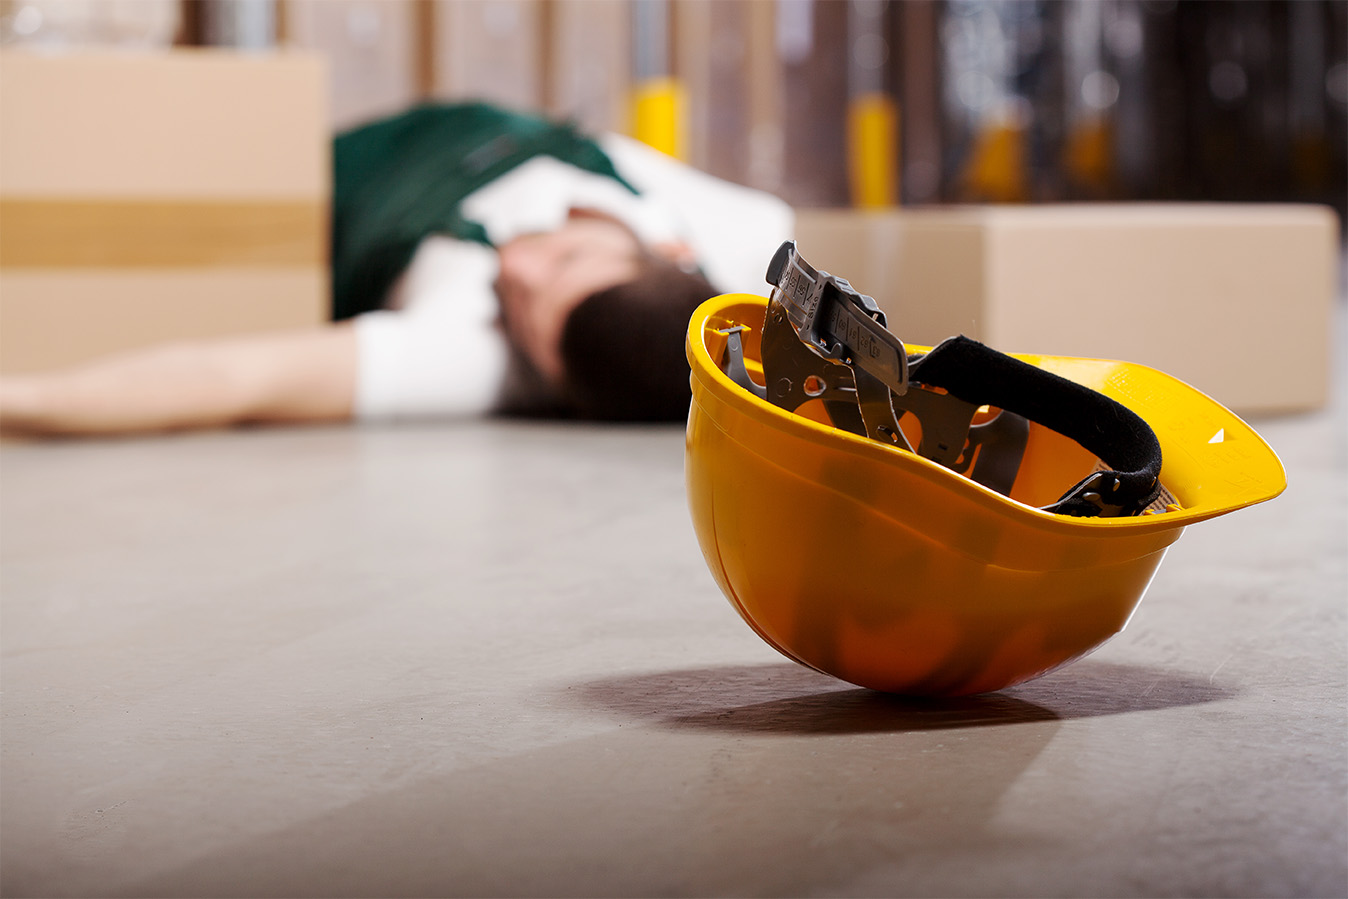 Man on the floor after workplace accident